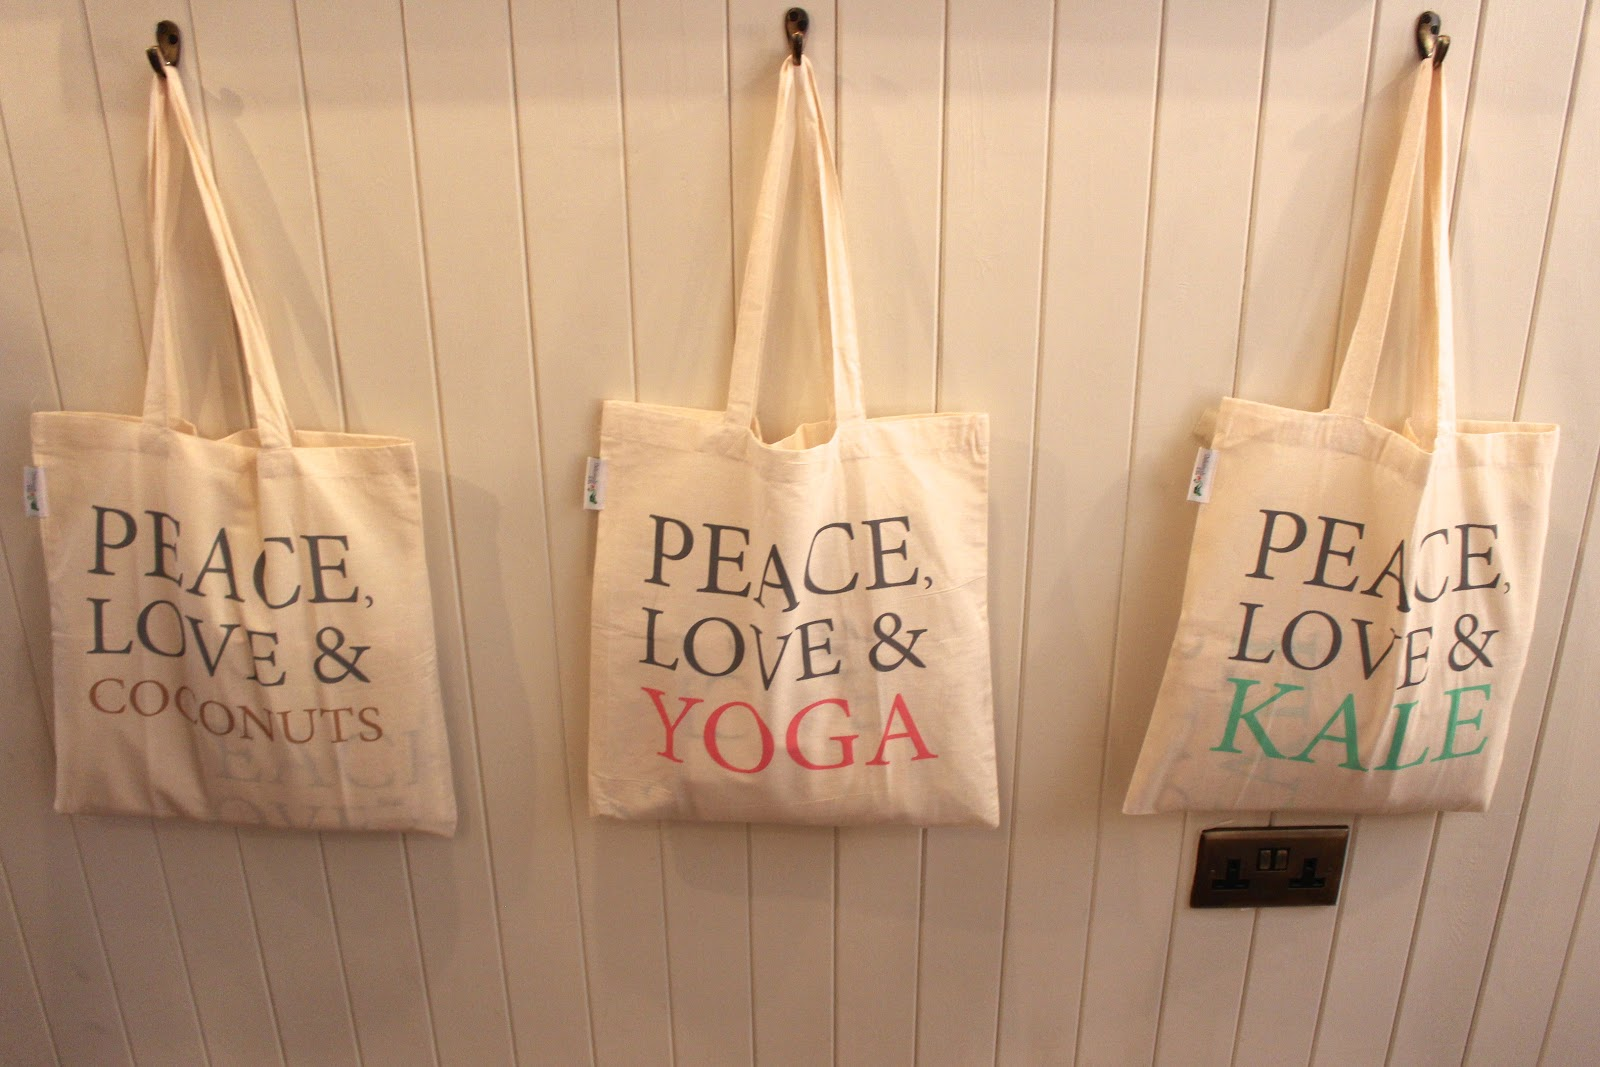 The Mae Deli by Deliciously Ella Peace & Love totes